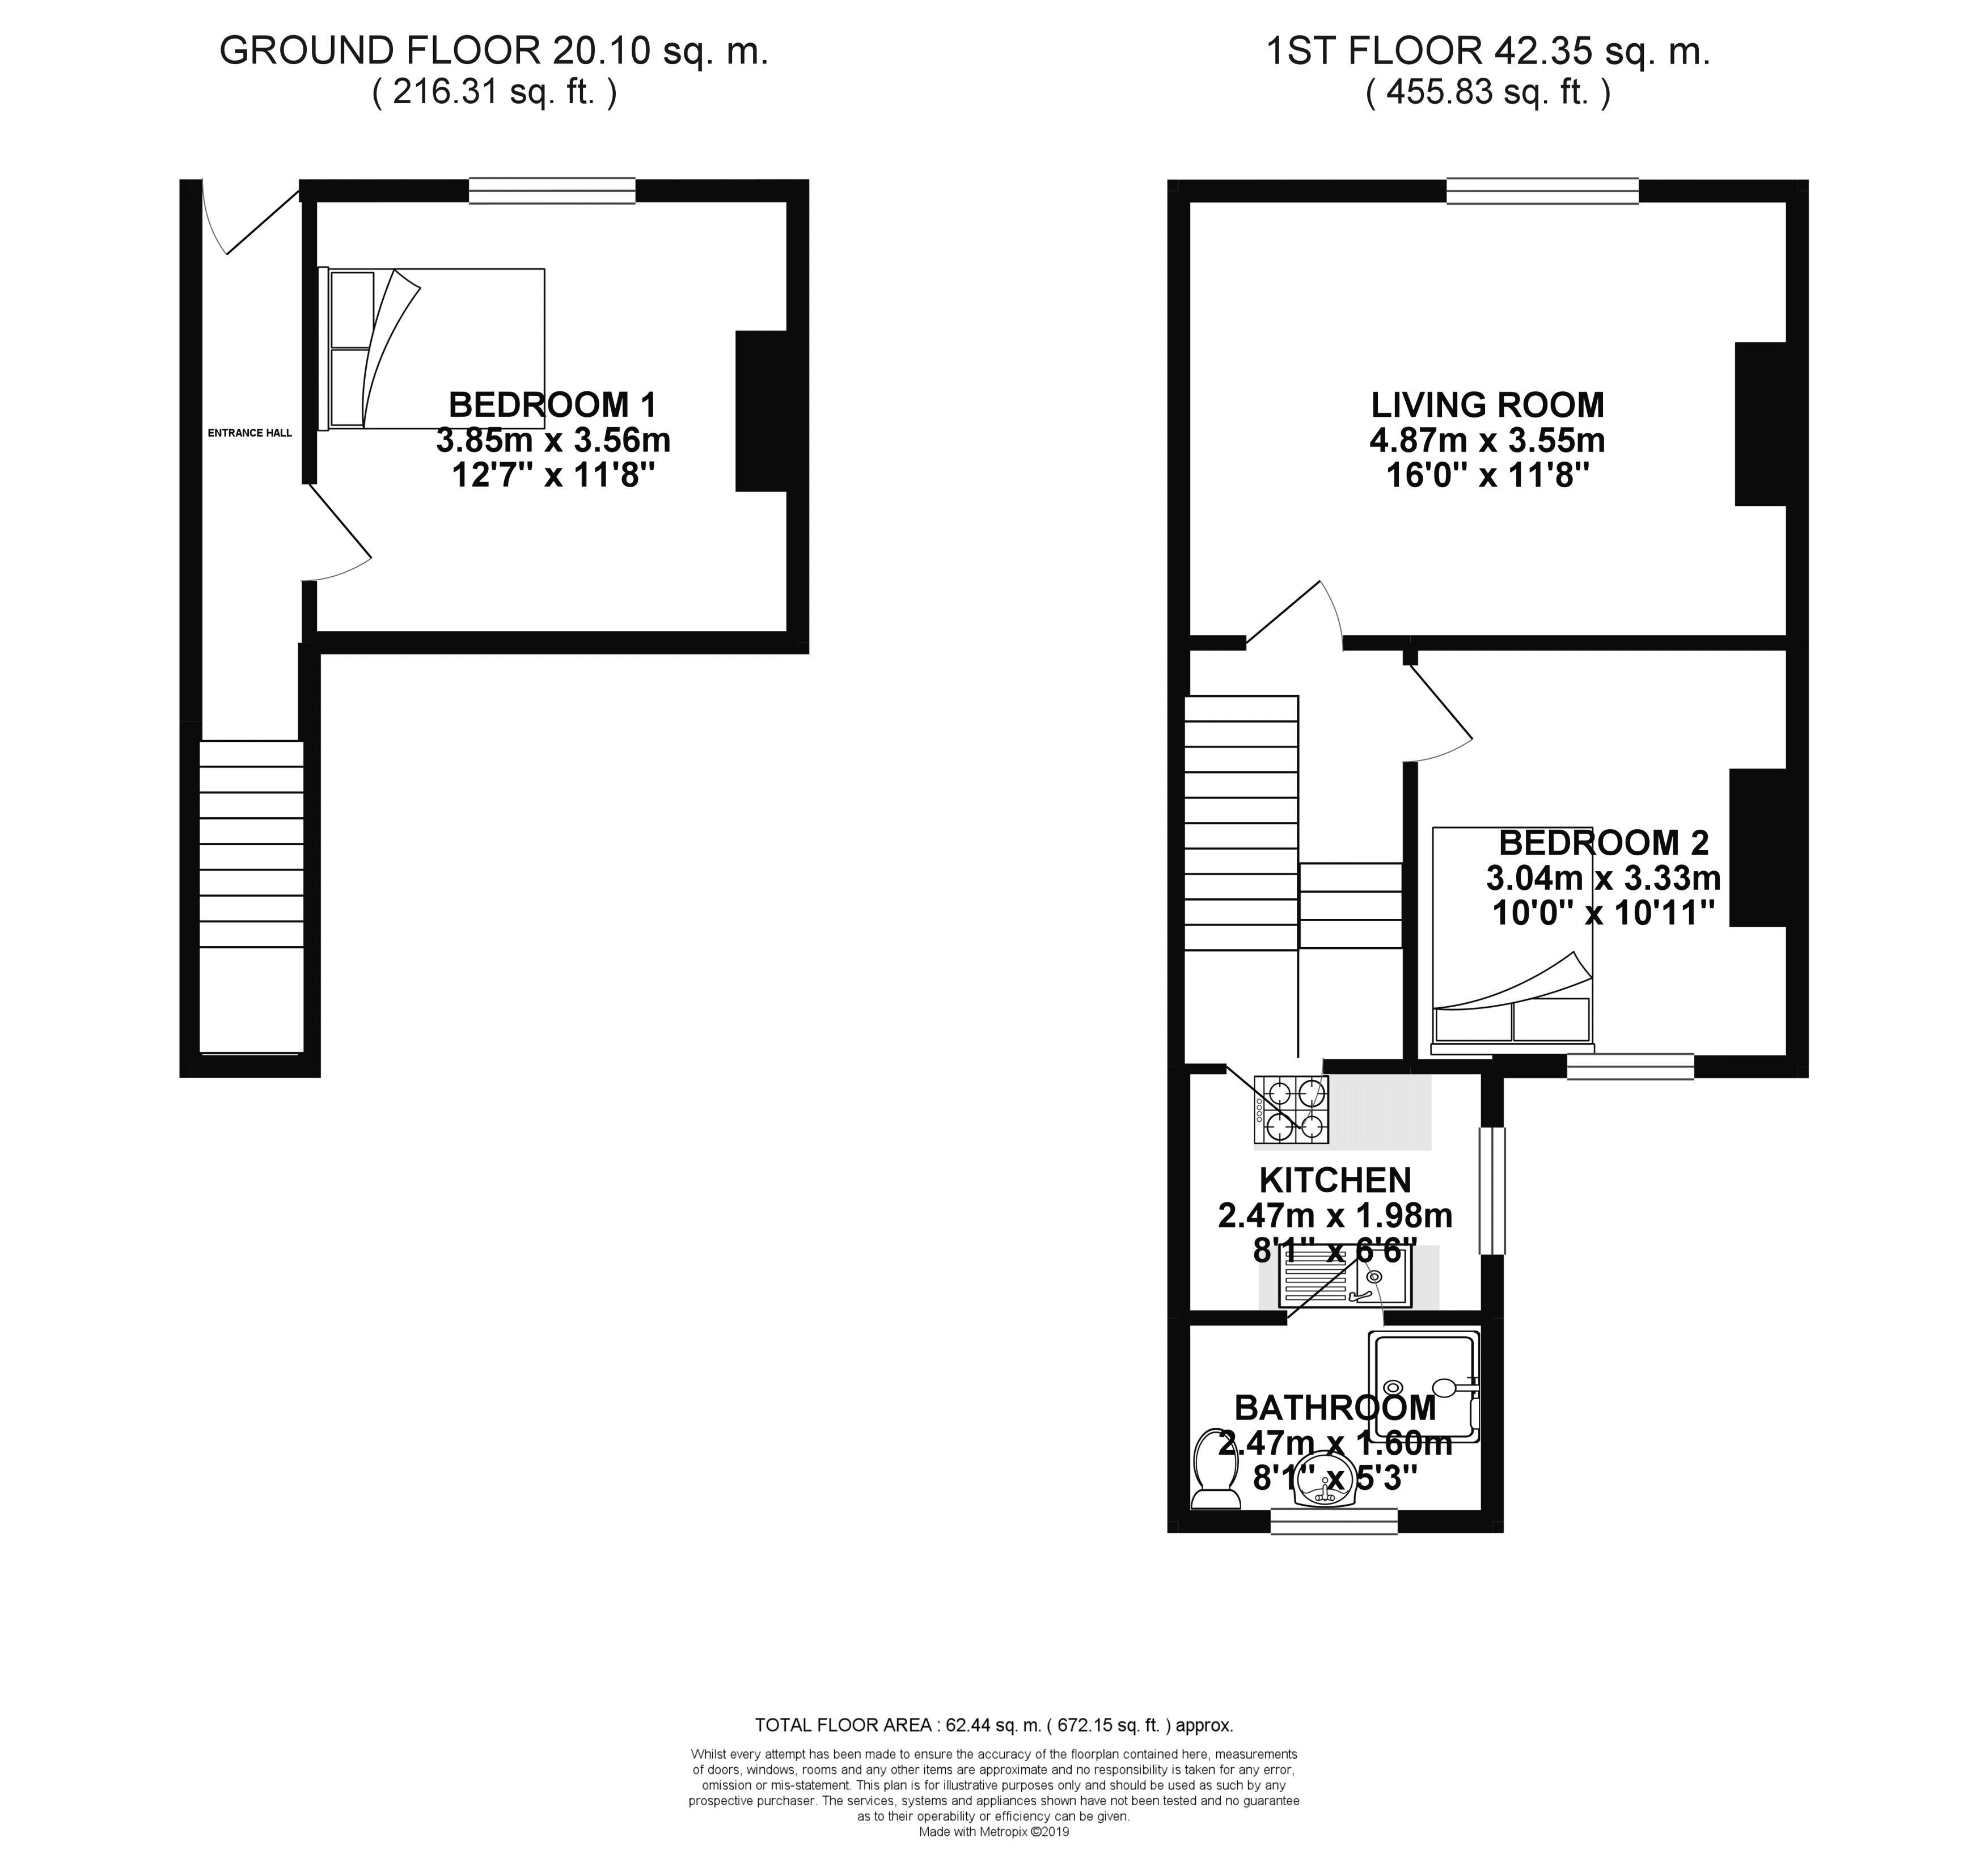 Floor plans for Hollingdean Road, Brighton property for sale in Lewes Road South, Brighton by Coapt